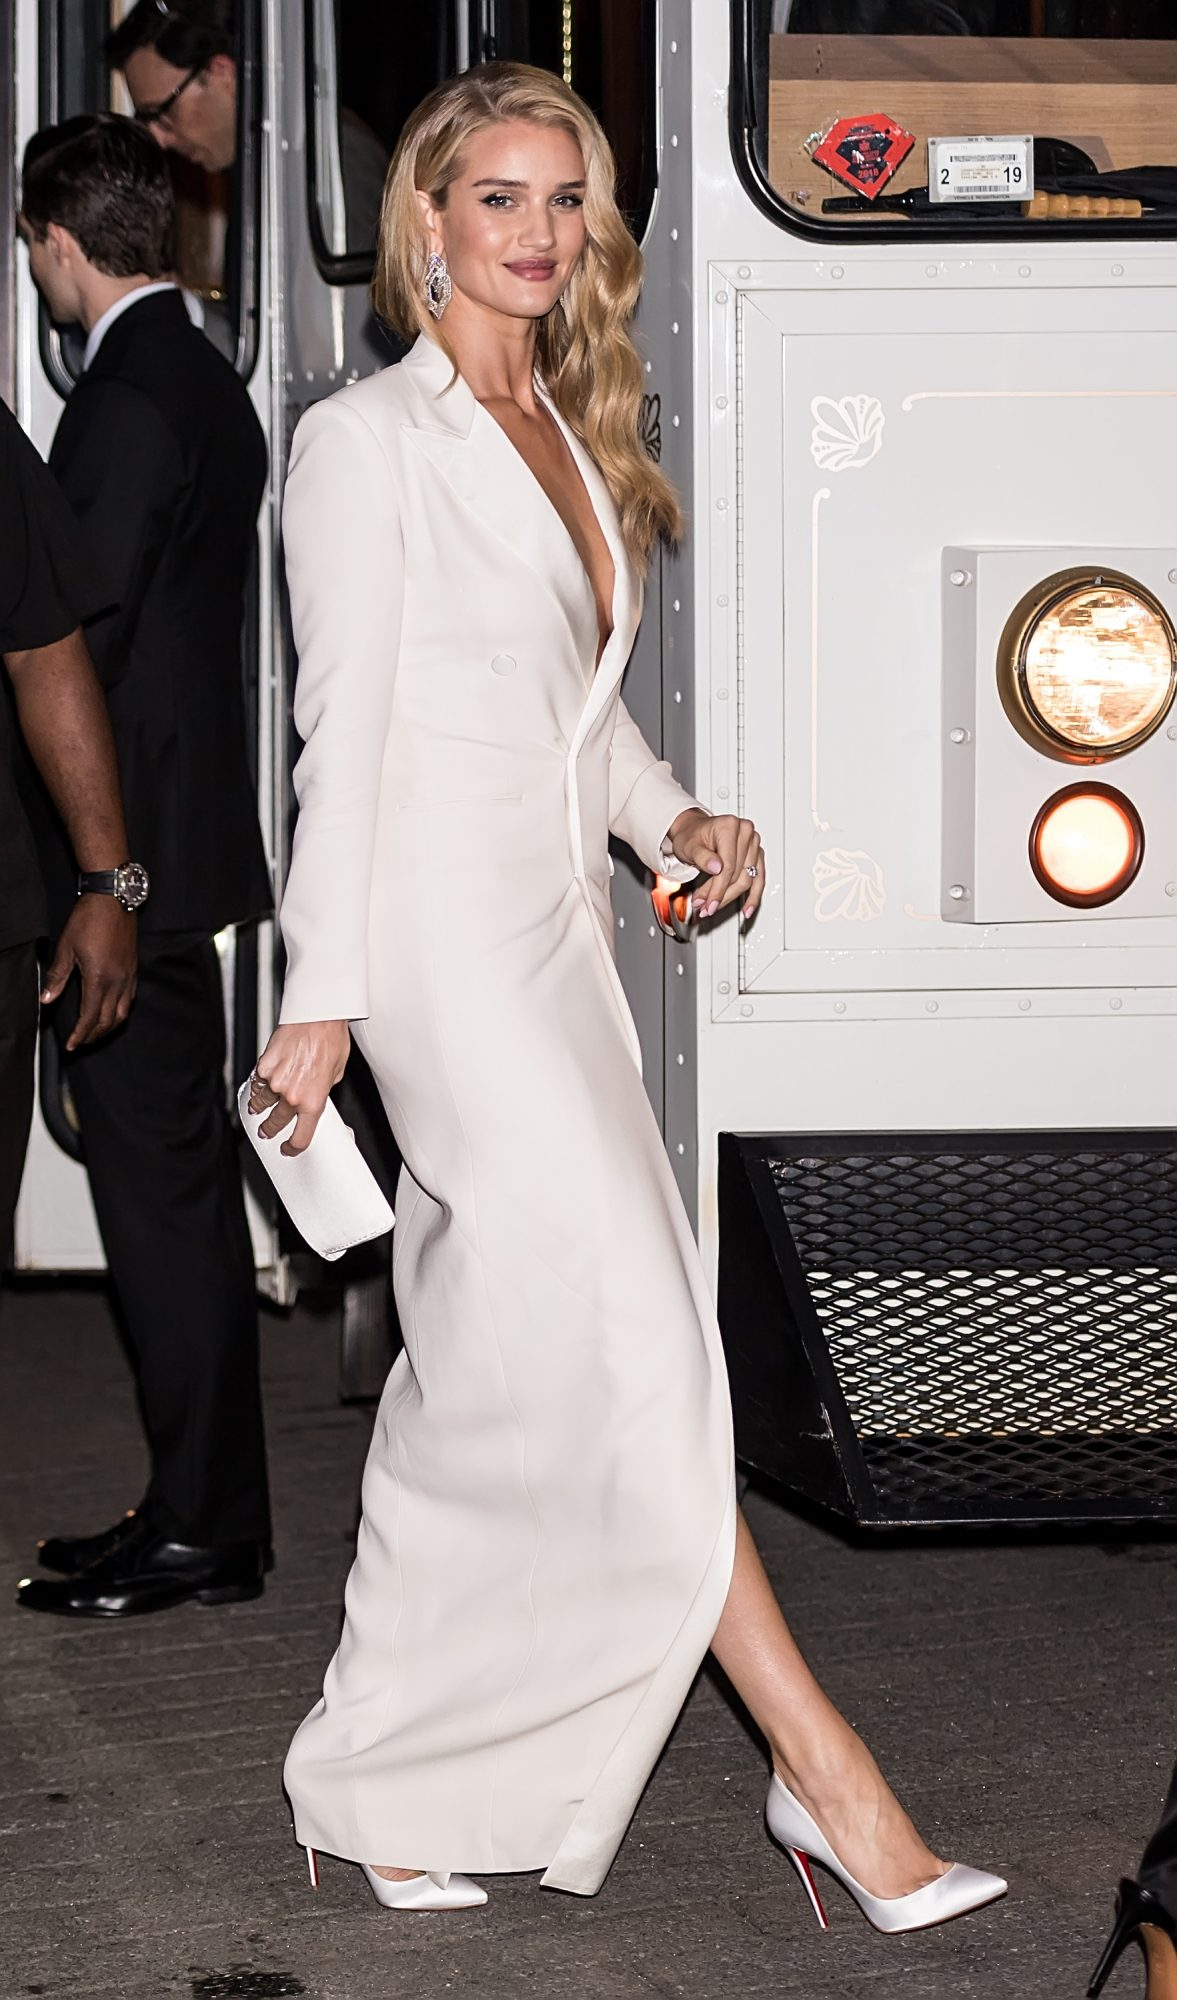 Rosie Huntington-Whiteley in a Ralph Lauren Tuxedo Dress